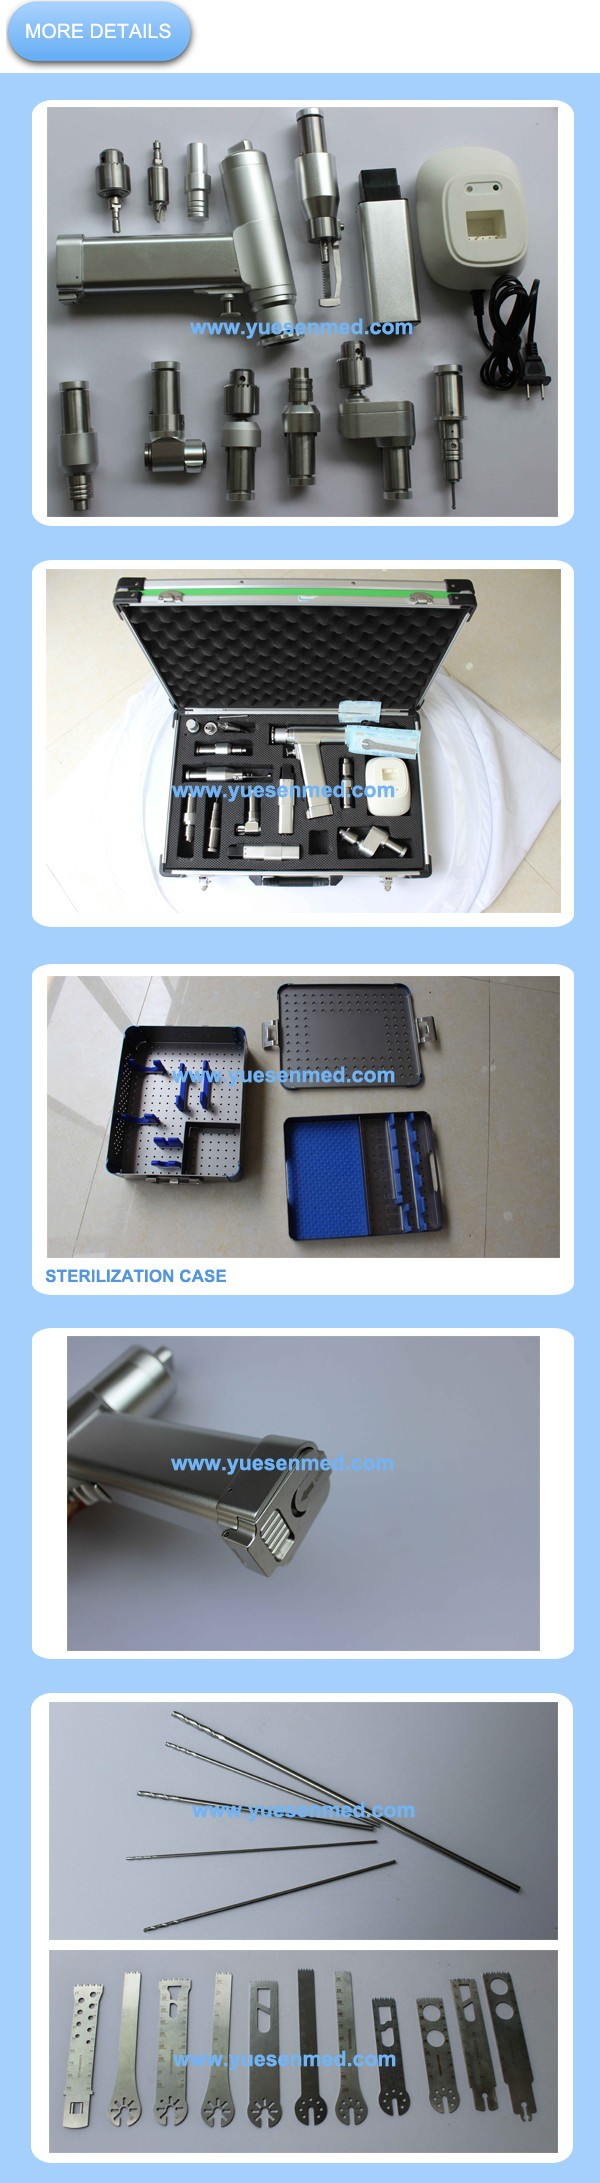 2016 medical drill orthopedic surgery instruments